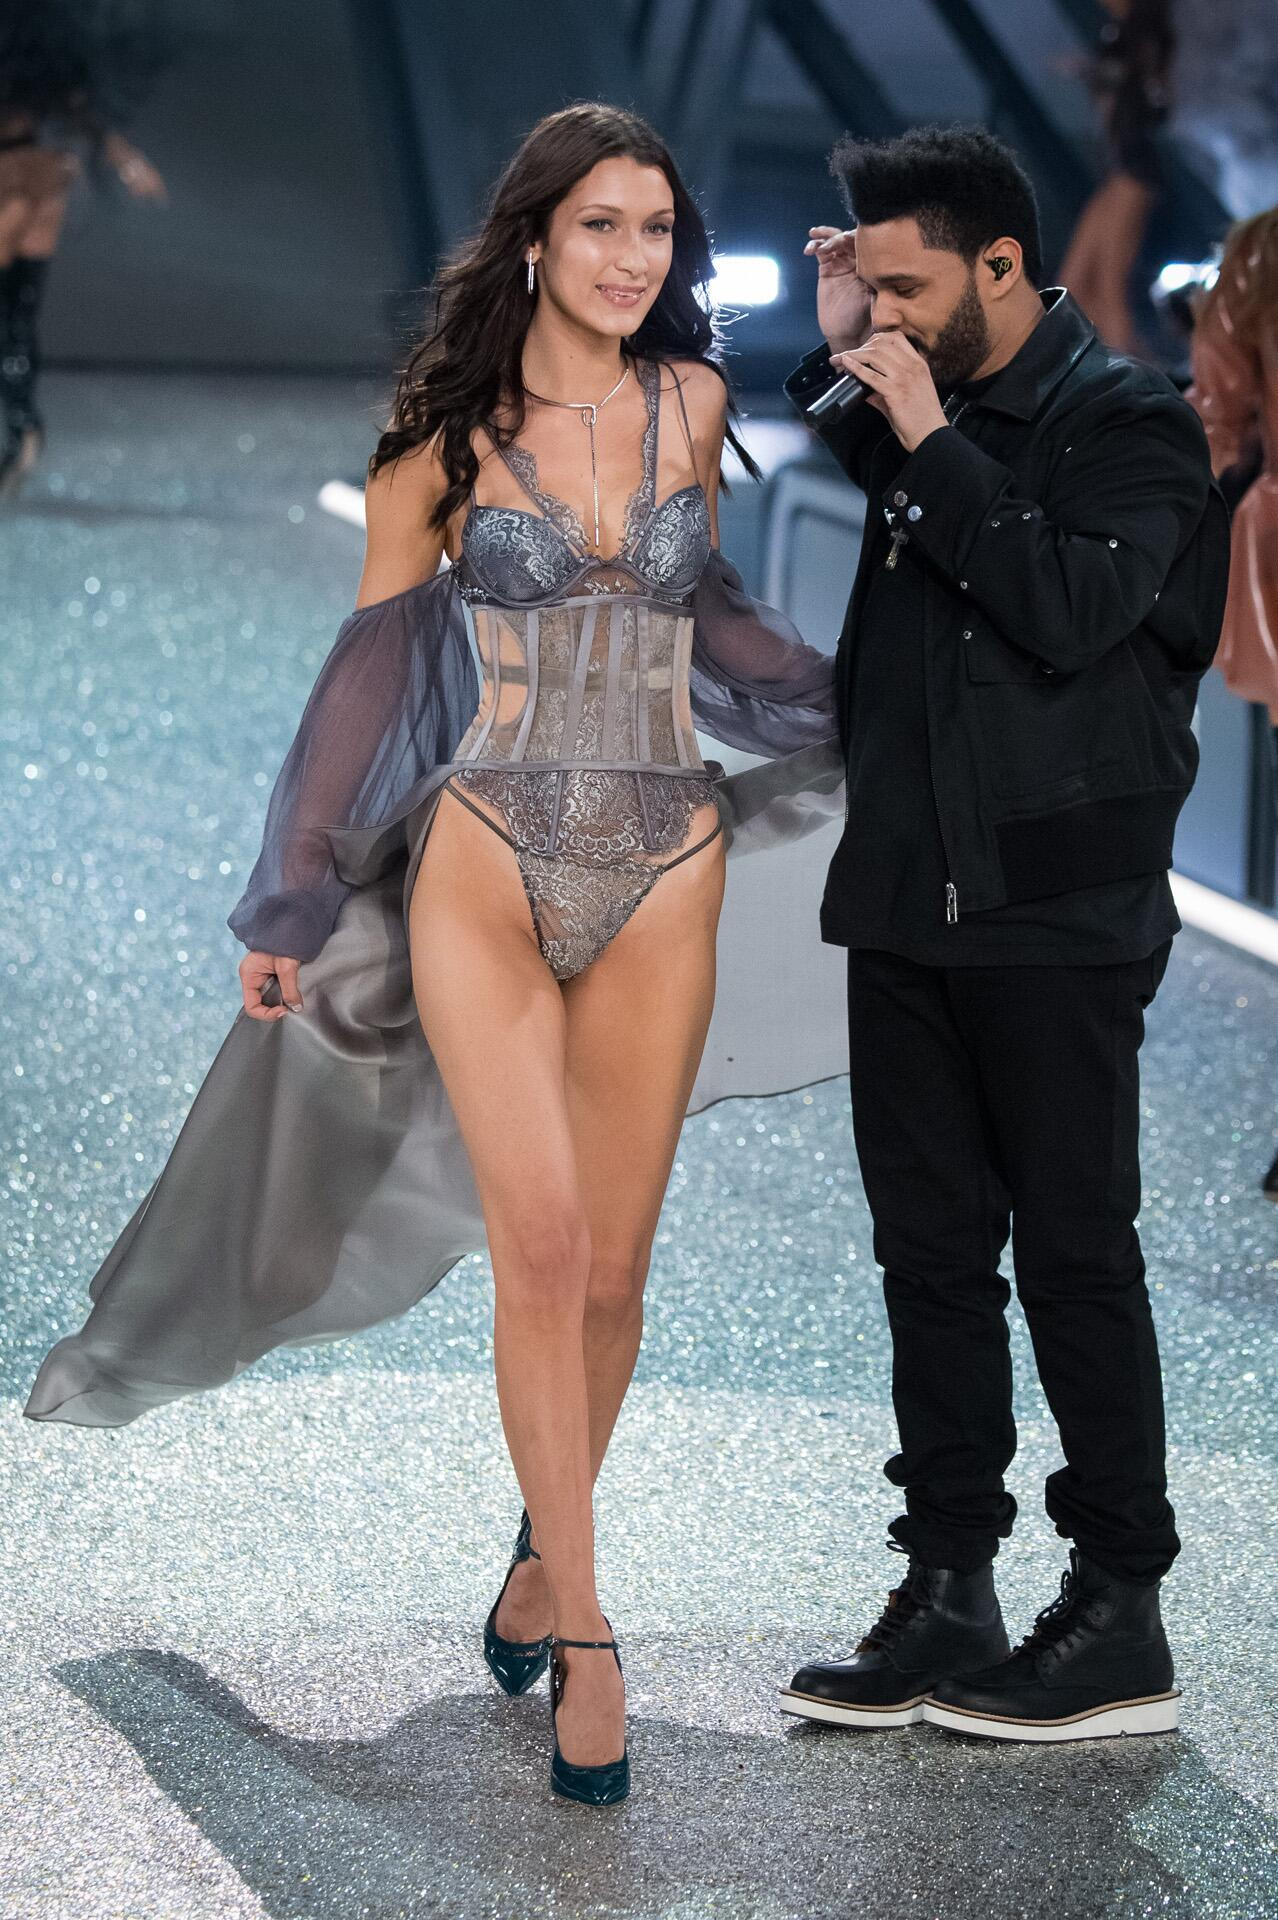 Bild zu Victoria's Secret, Paris 2016, Catwalk, Bella Hadid, Weeknd